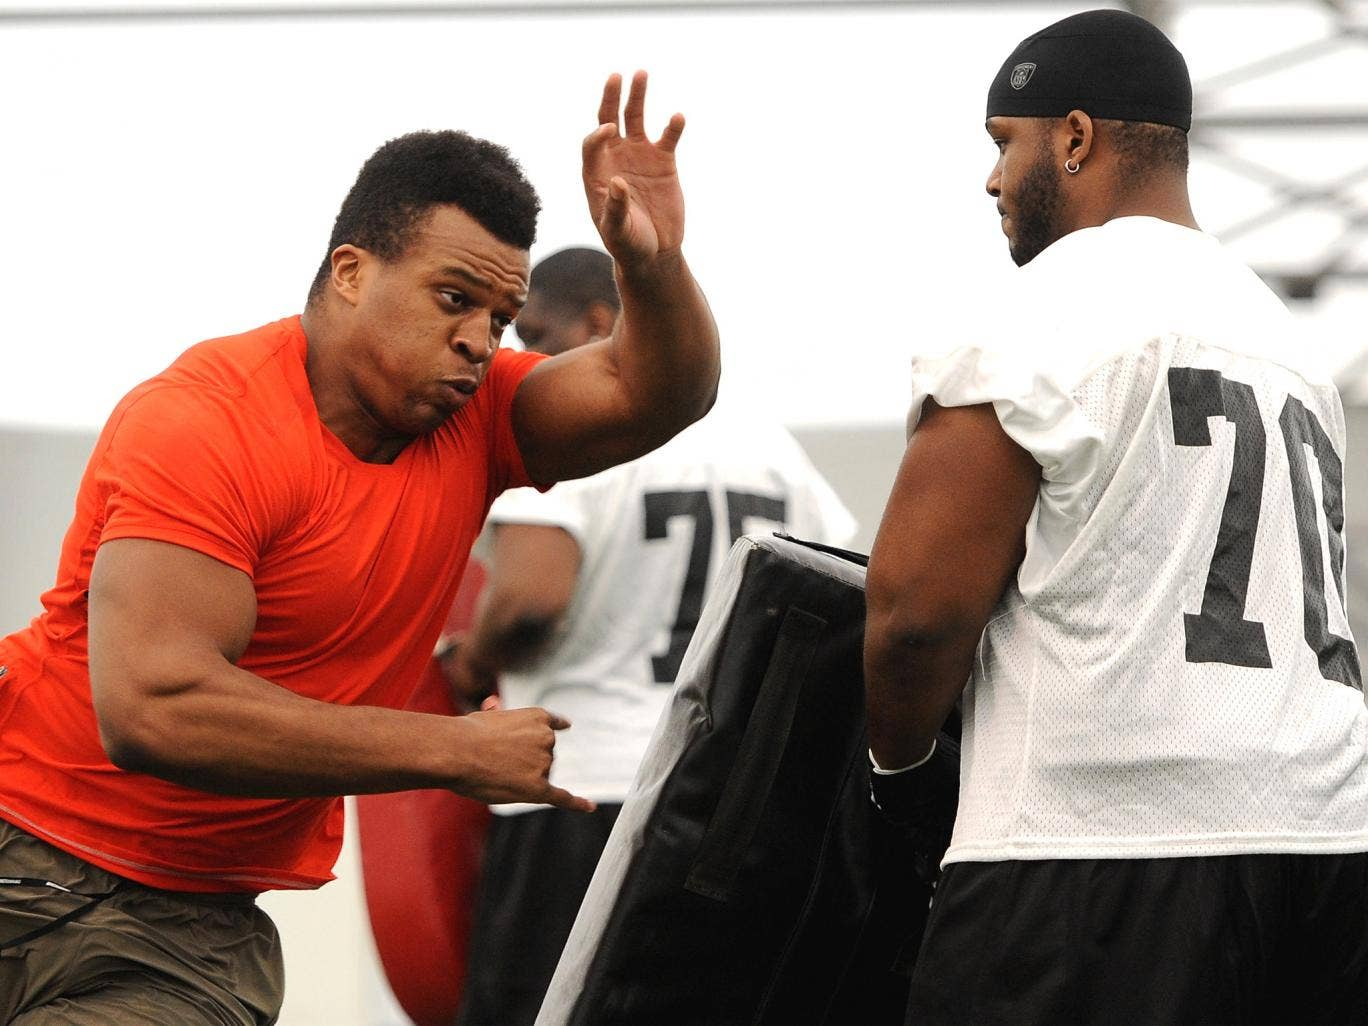 Lawrence Okoye takes part in activities during the NFL Media Day at the London Soccerdome on Tuesday